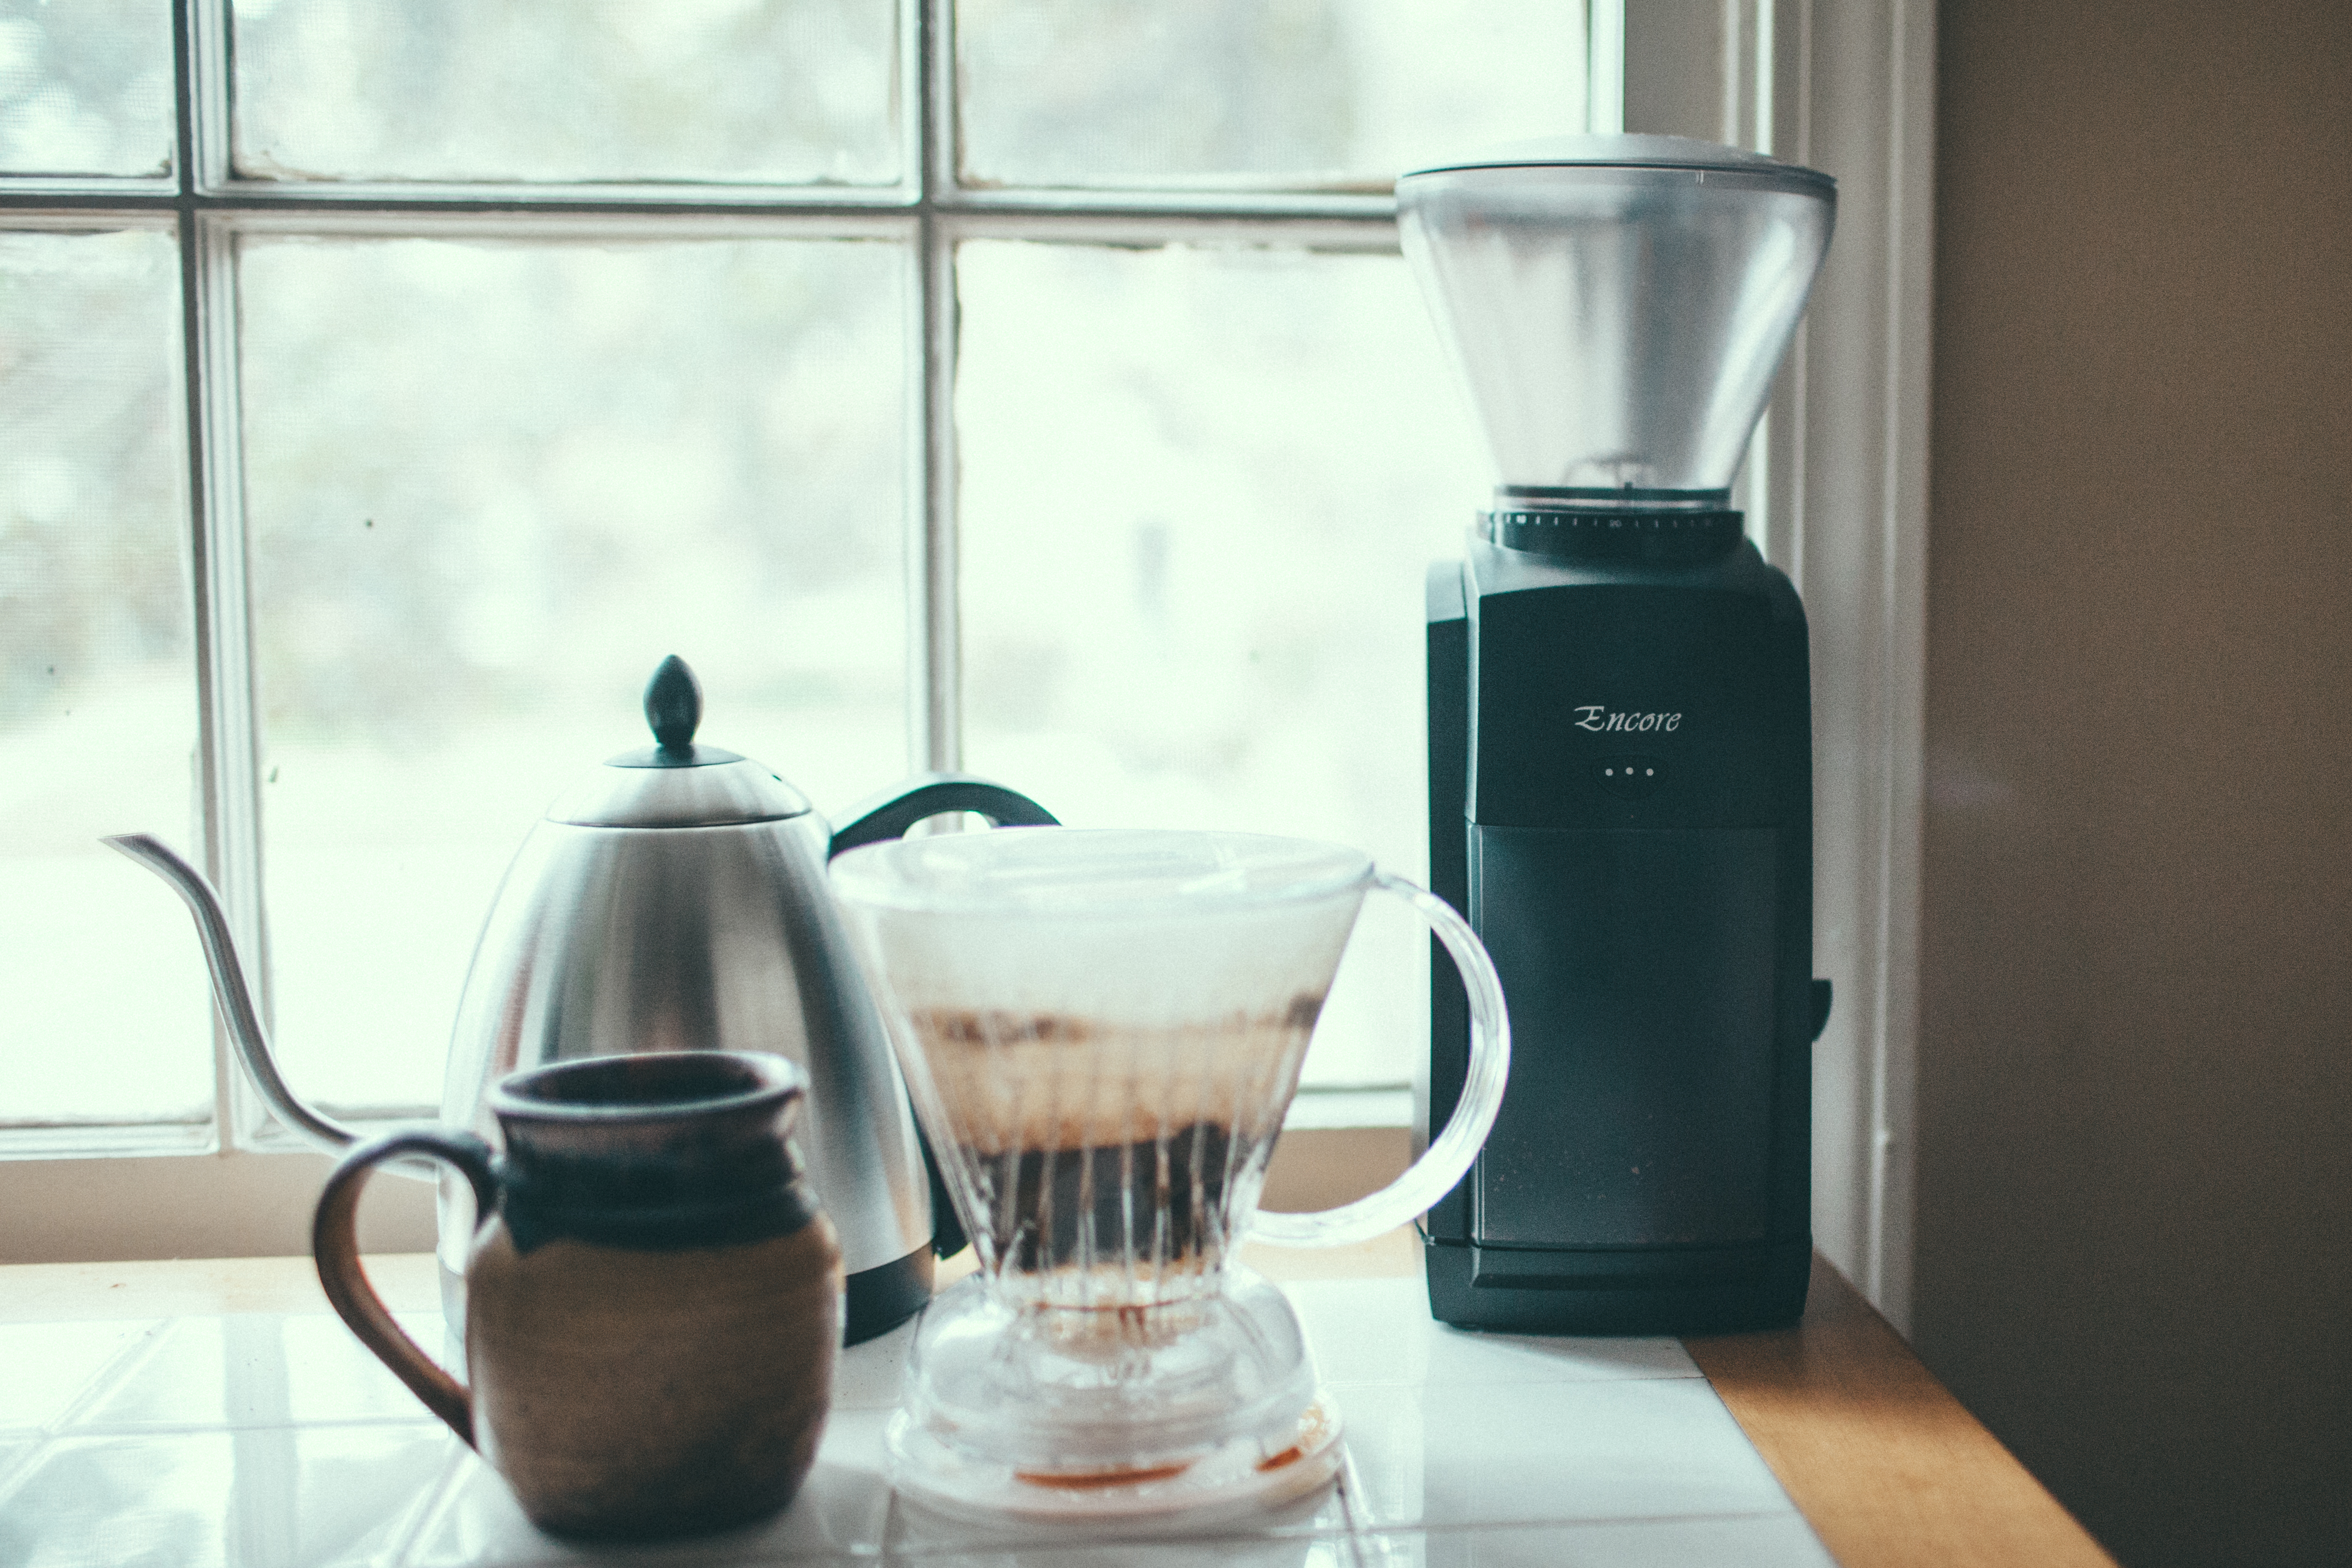 The Baratza Encore is a smart pick for your first burr grinder, striking a great balance between price and performance